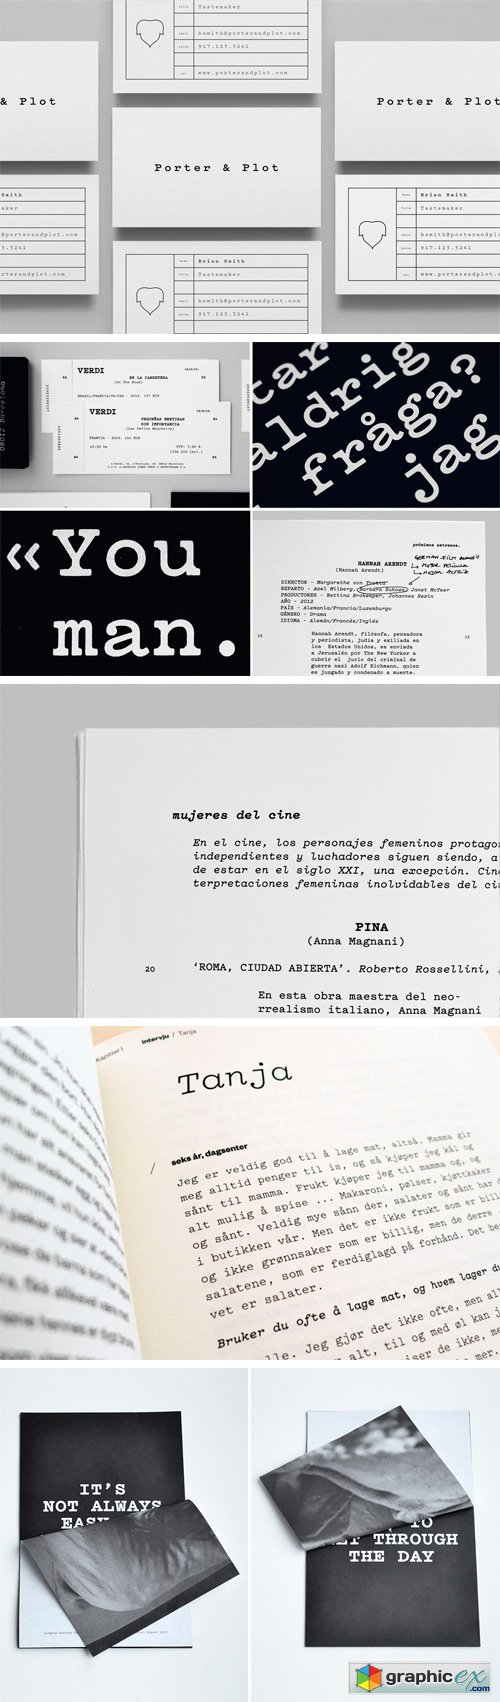 Pitch Font Family